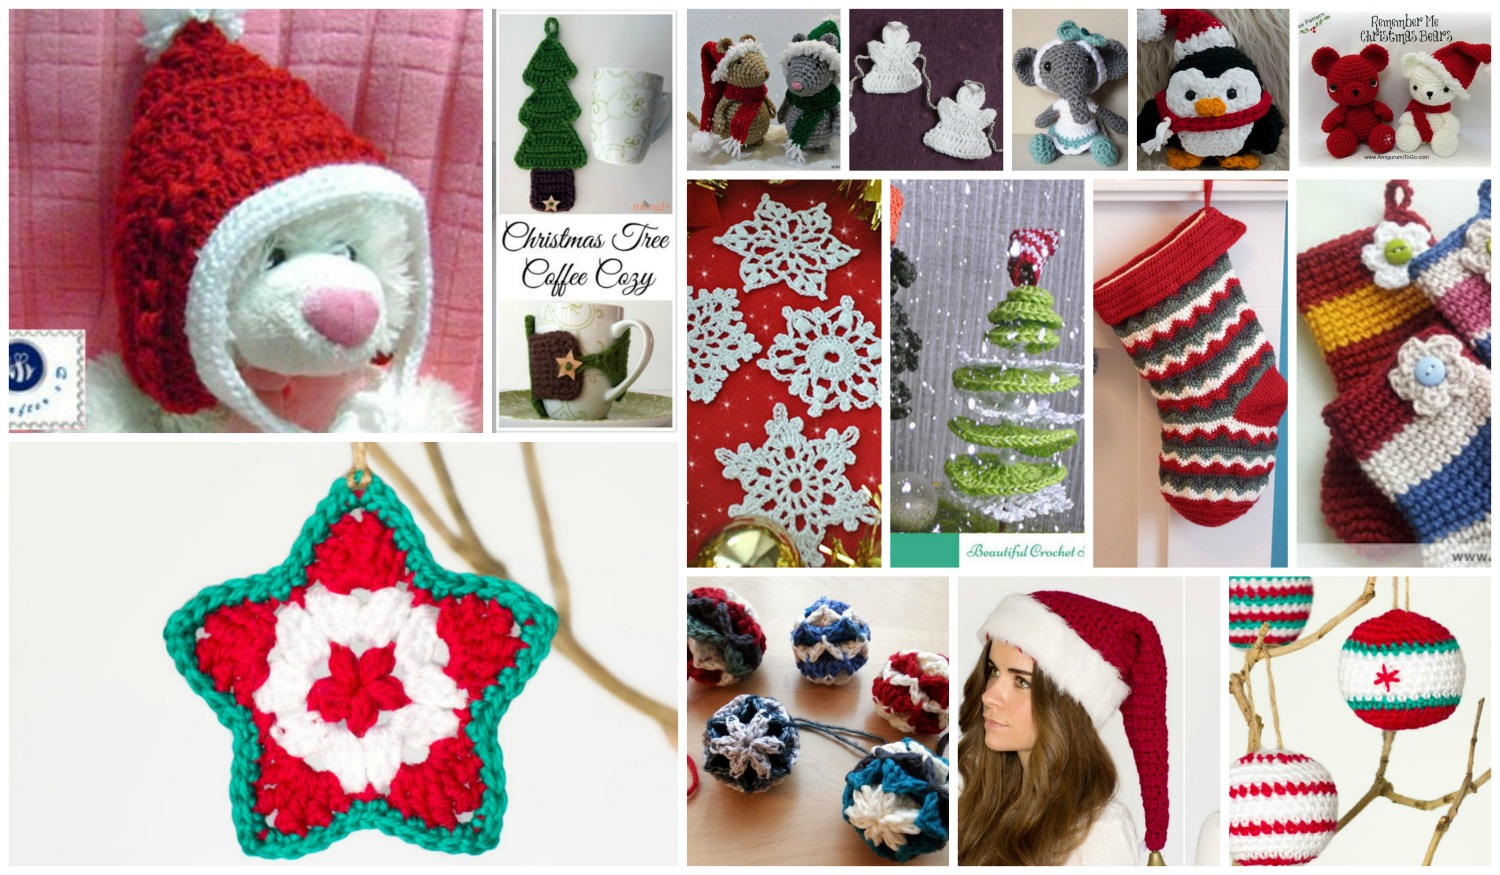 Crochet Christmas Ornaments: 15 Most Loved Ornaments ...